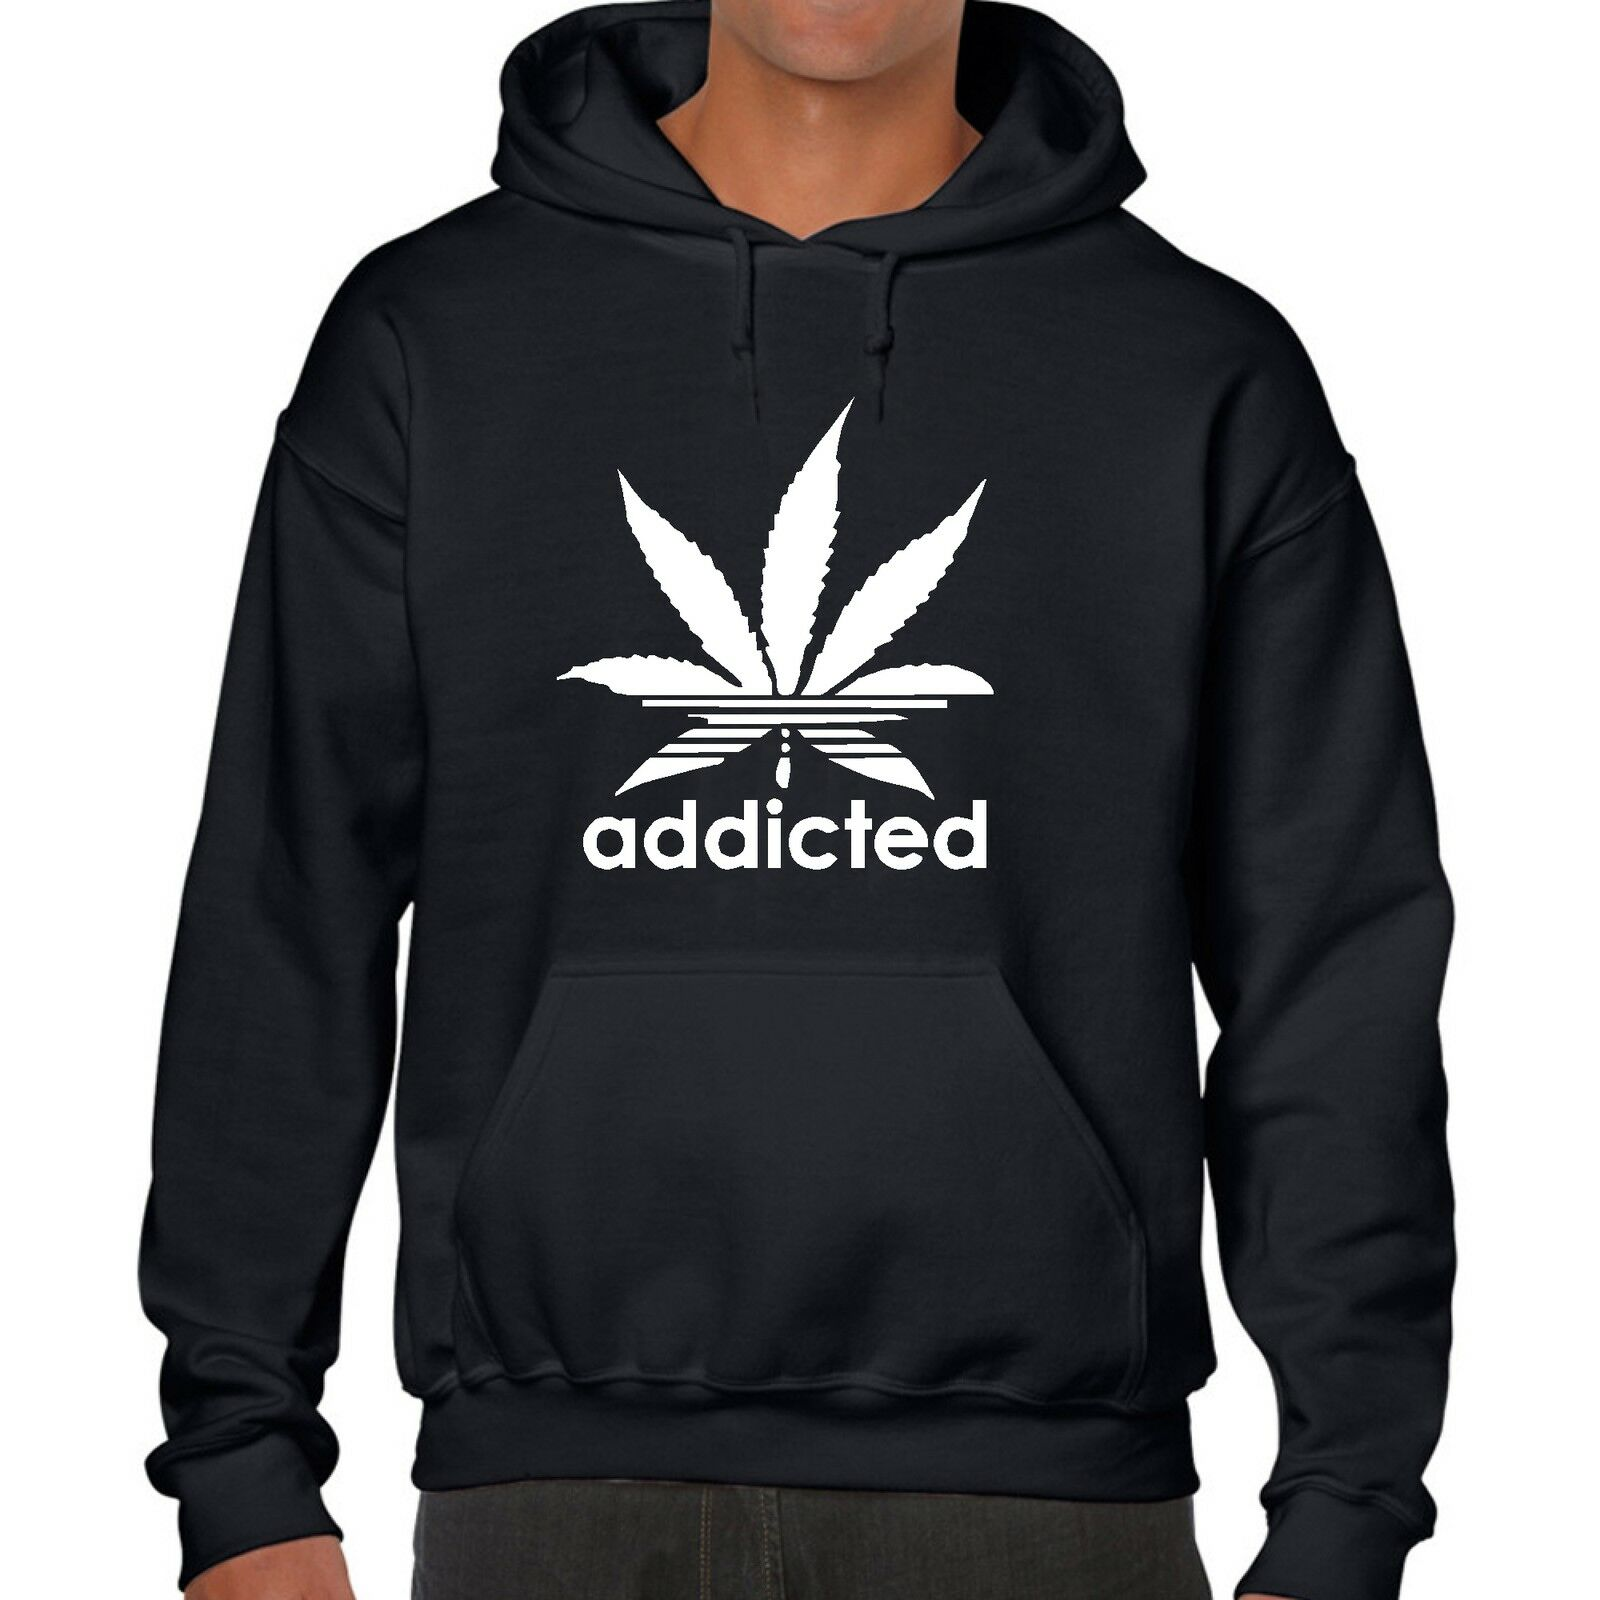 ADDICTED HOODY jumper SHIRT addict  CANNABIS WIZ KHALIFA PROSTo MARIJUANA 1